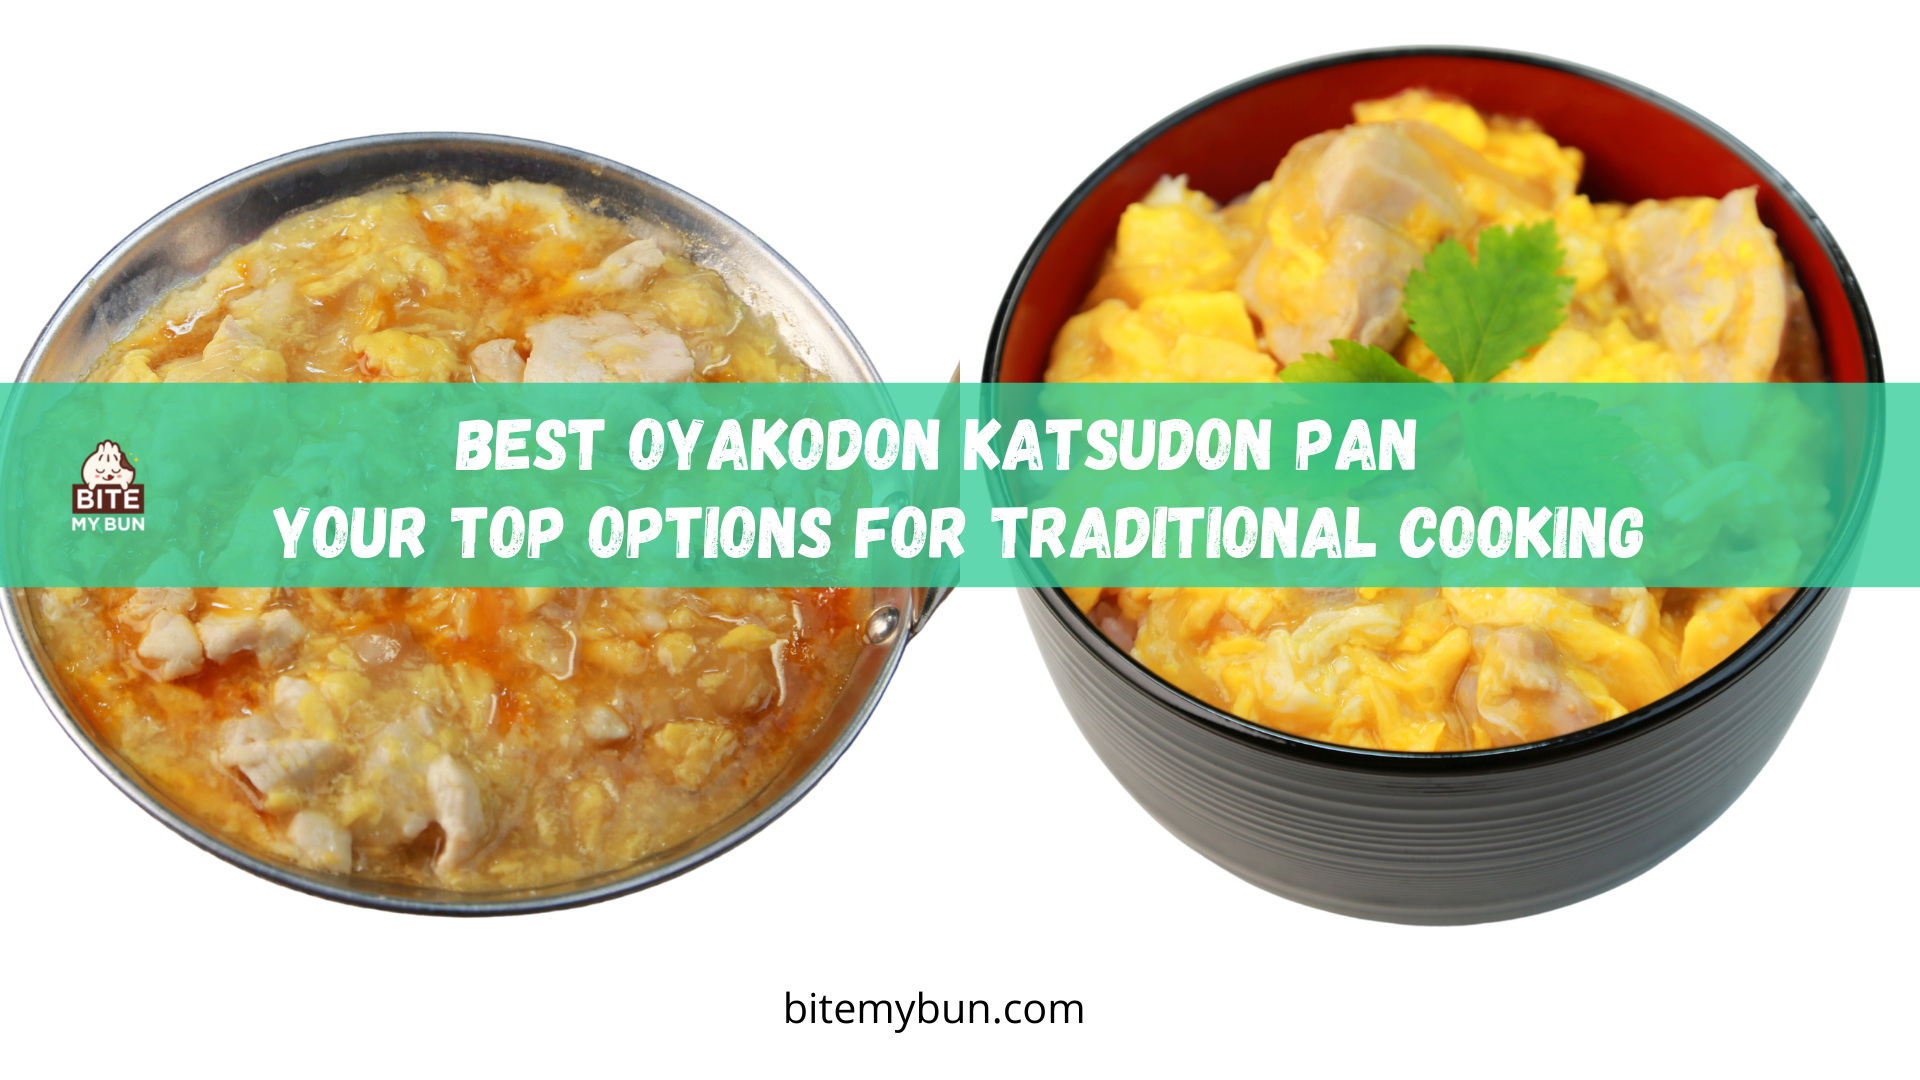 Best oyakodon katsudon pan | Your top options for traditional cooking